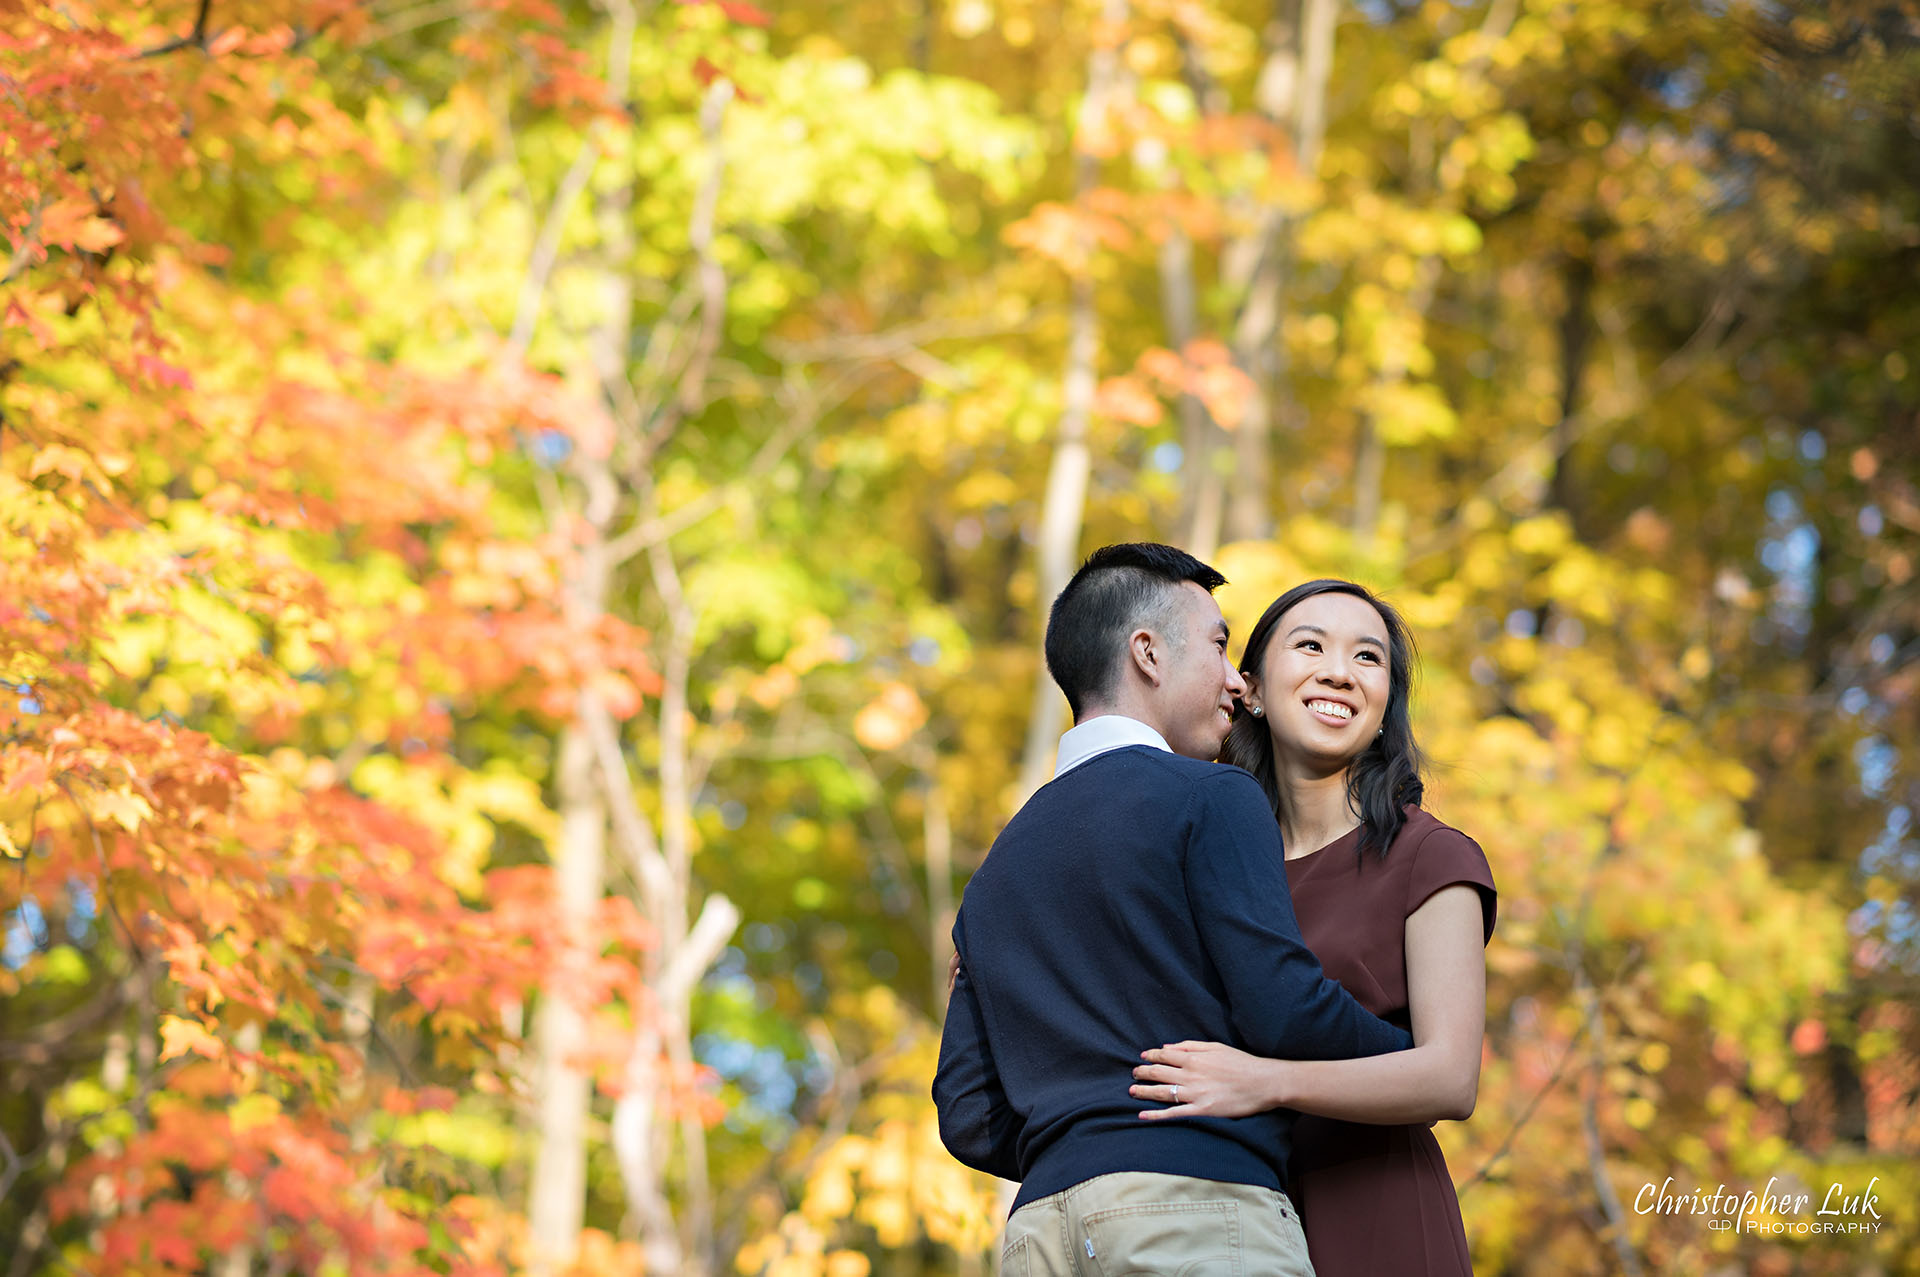 Christopher Luk Toronto Wedding Engagement Session Photographer Autumn Fall Leaves Natural Candid Photojournalistic Bride Groom Hiking Trail Trees Hug Holding Each Other Together Orange Red Yellow